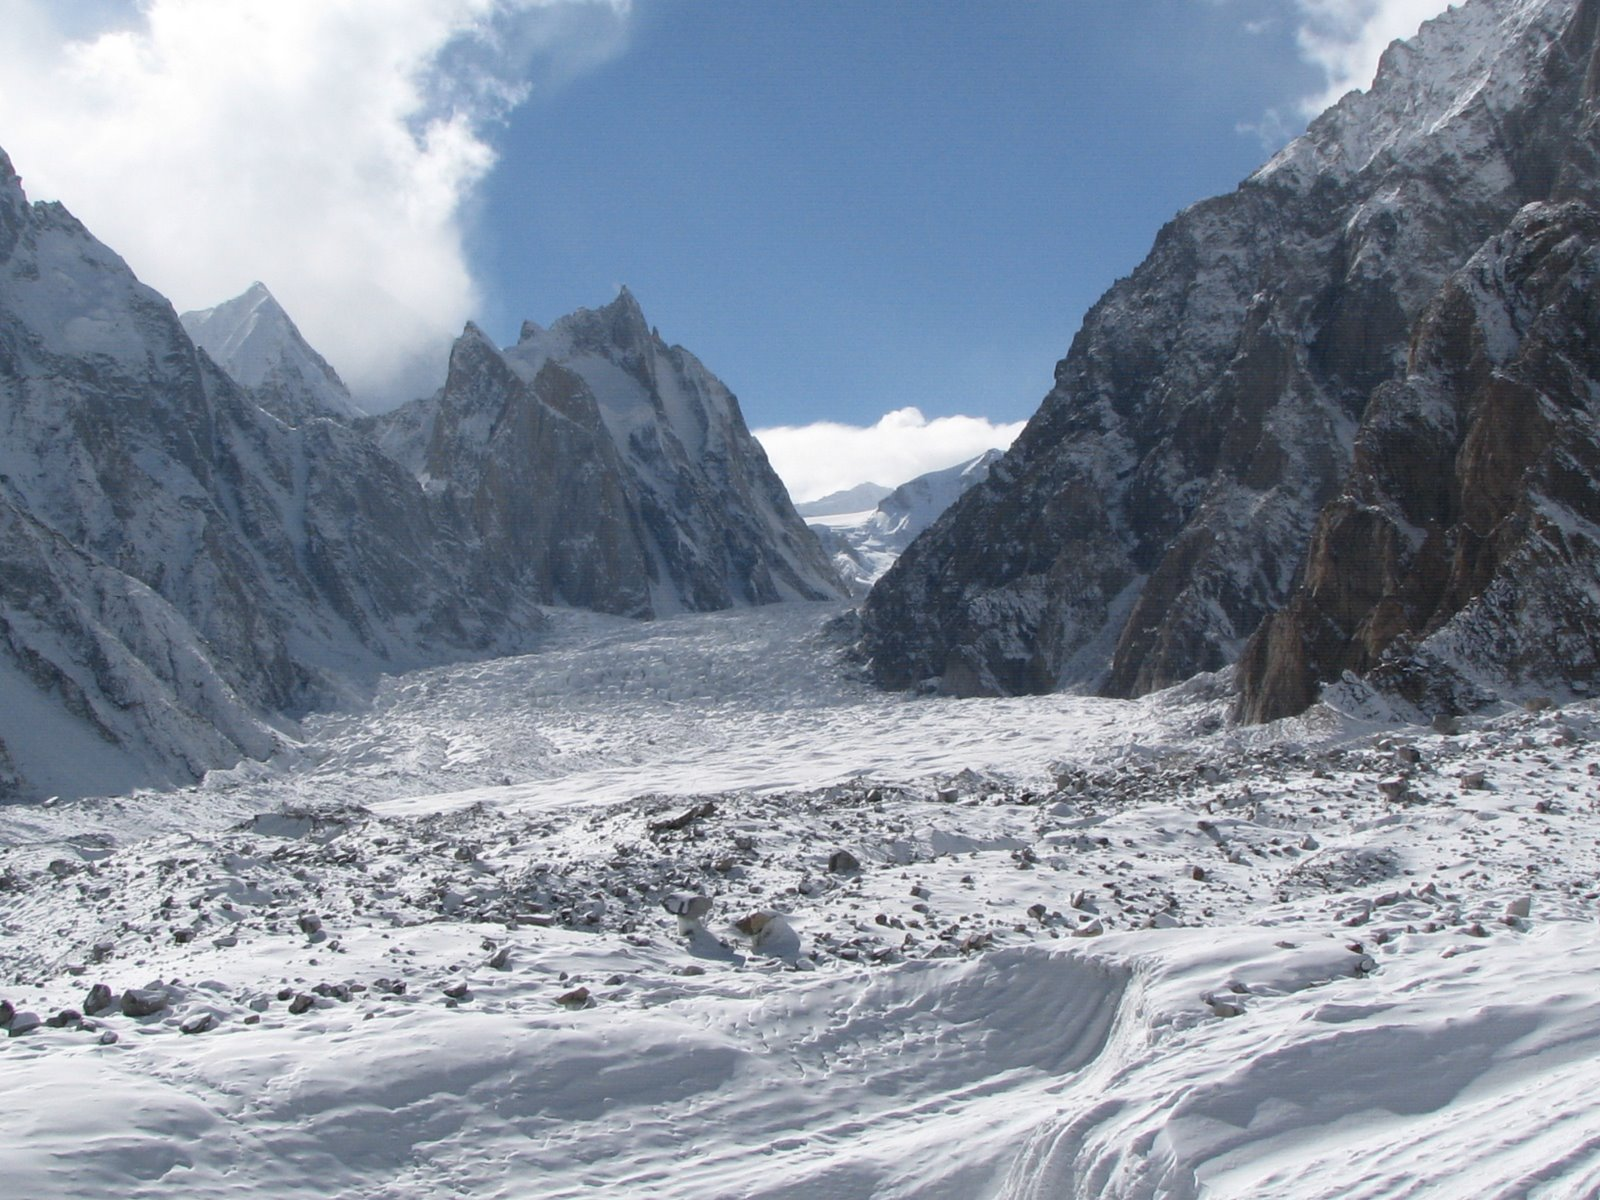 KARAKORAM_RANGE_SIACHEN_GLACIER_(SUMMER)_KASHMIR_GREATER_HIMALAYAS_India_Siankiang_(China)_Border